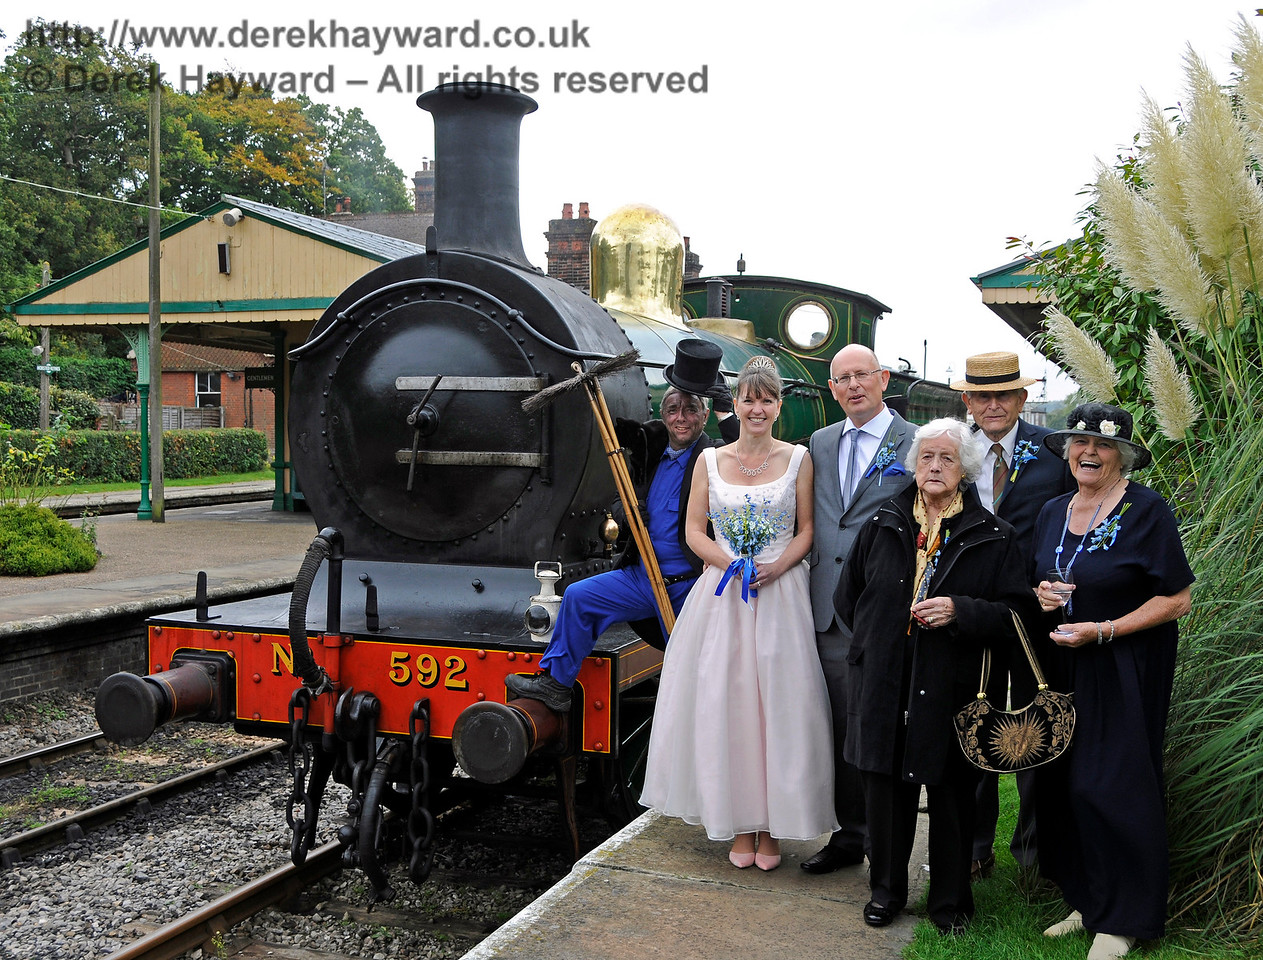 Mike and Miranda married at Horsted Keynes on 10.10.2015  (Picture of this private event used with the consent of the bride and groom).  13851